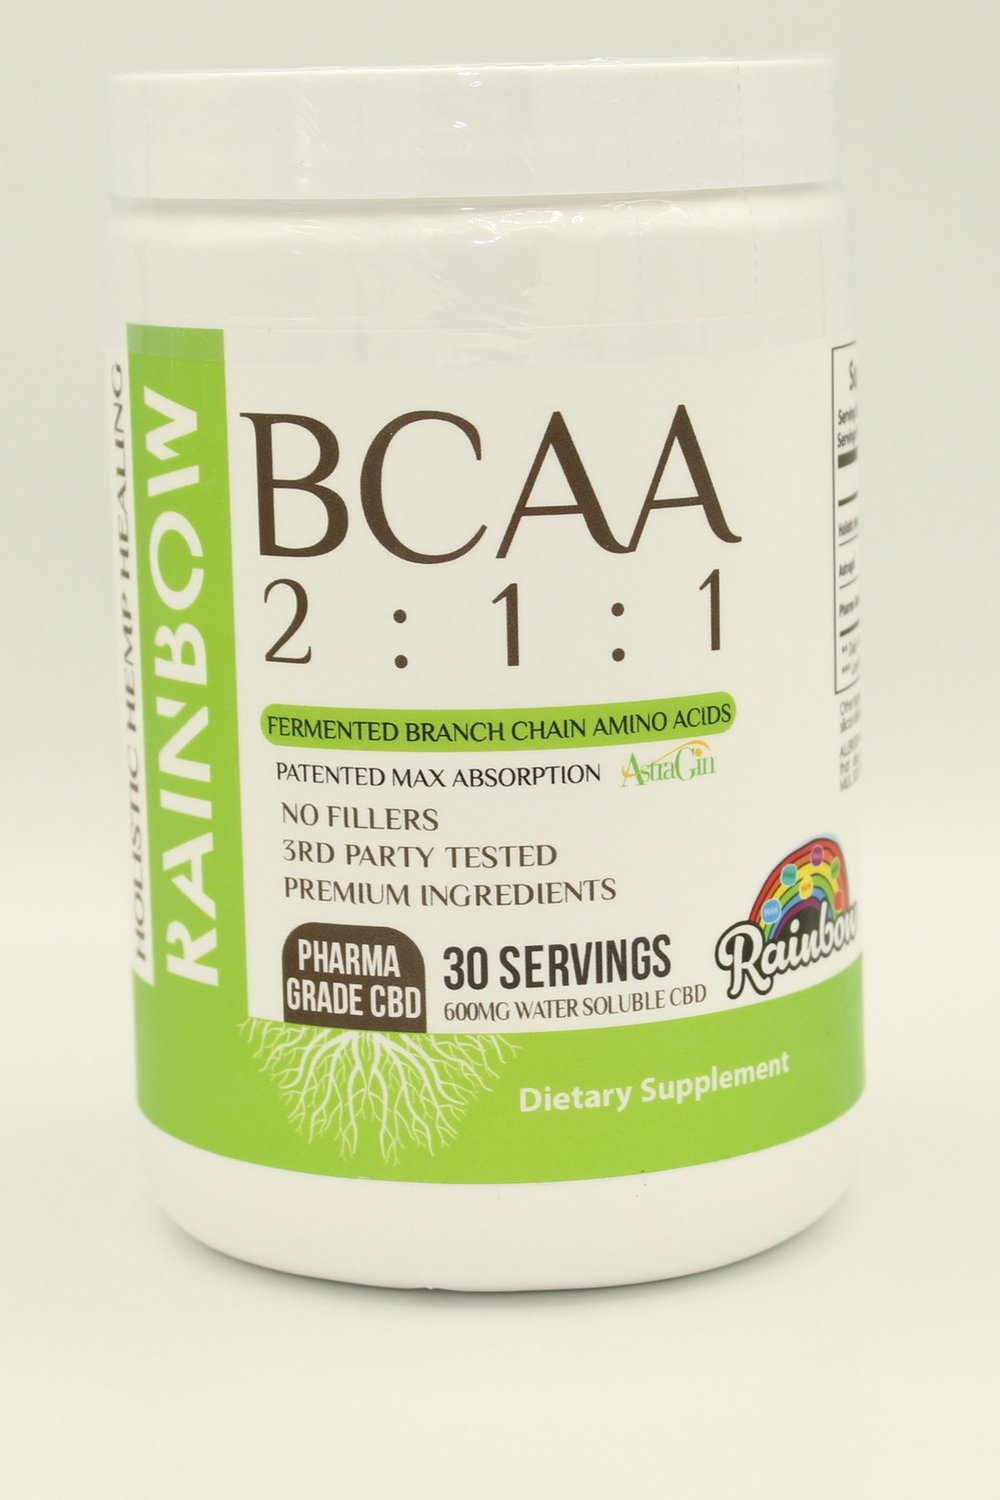 BCAA 2:1:1 - $44.95If your serious about your fitness game, or getting serious, you've most likely heard of or used a BCAA product. BCAA 2:1:1 is unlike any you've ever tired before. With an amazing fruity rainbow flavor, a patented max absorption method, fermented branch chain amino acids, and 600 mg of Pharma Grade Water Soluble CBD derived from industrial hemp, this will be your favorite go to muscle recovery product.This product is 100% THC Free and contains Pharma Grade Water Soluble CBD Powder derived from industrial hempINGREDIENTS8000 mg Holistic Hemp Healing 2:1:1 BCAA, 25 mg Astragin®, 20 mg Pharma Grade Water Soluble CBD derived from industrial hemp, Natural and Artificial Flavors, Malic Acid, Sucralose, Silicon Dioxide, and Acesulfame Potassium.DIRECTIONS FOR USEAdd 1 scoop of BCAA 2:1:1 to 10 oz of water 2 times daily. For best results, shake for 30 seconds in a shaker cup.